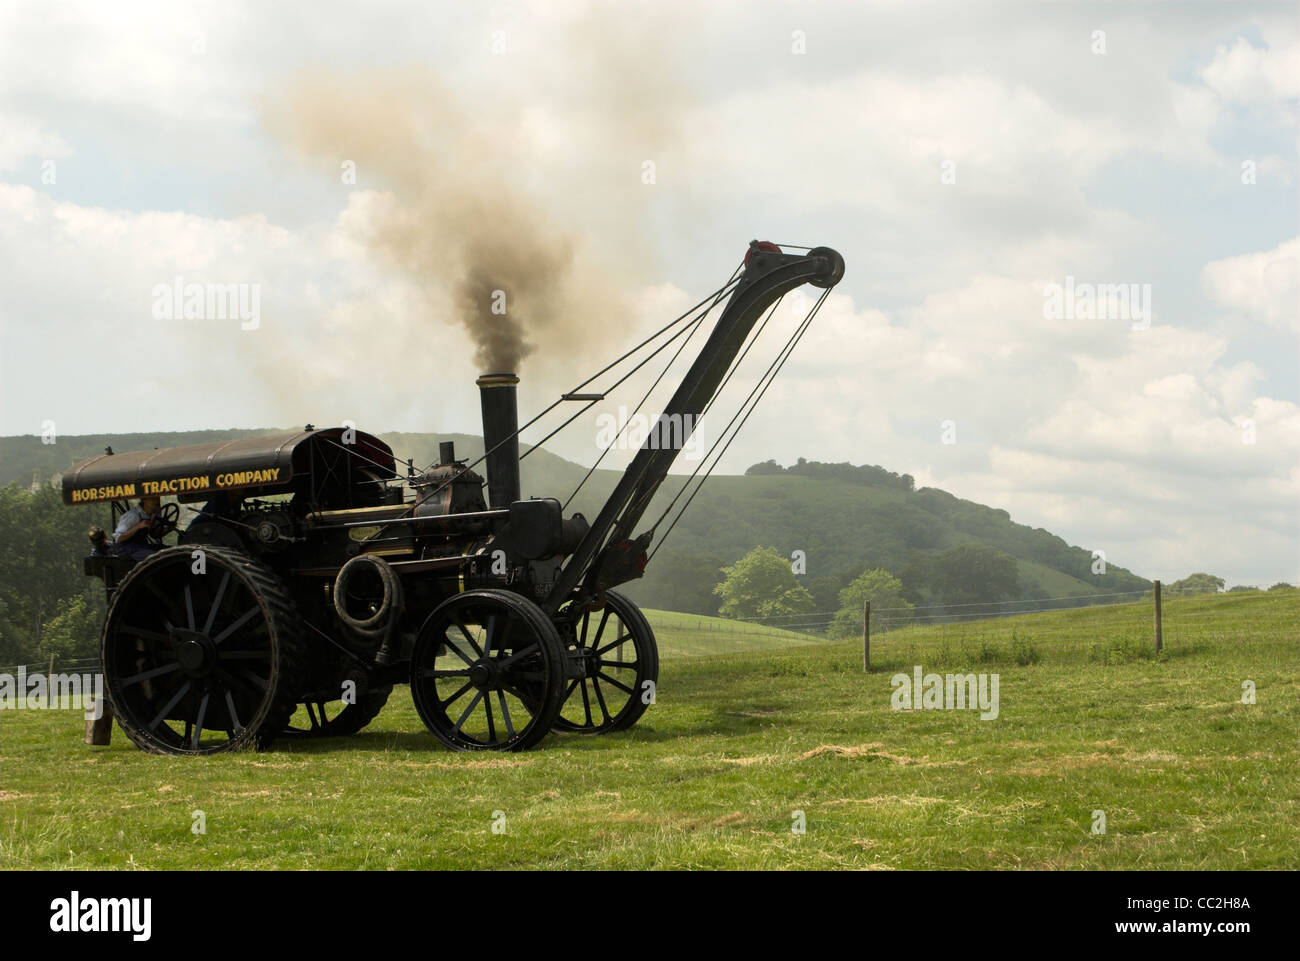 A Fowler 8nhp B5 Road Locomotive Crane Engine, built 1901 and pictured here on the South Downs at Wiston Steam Rally. - Stock Image